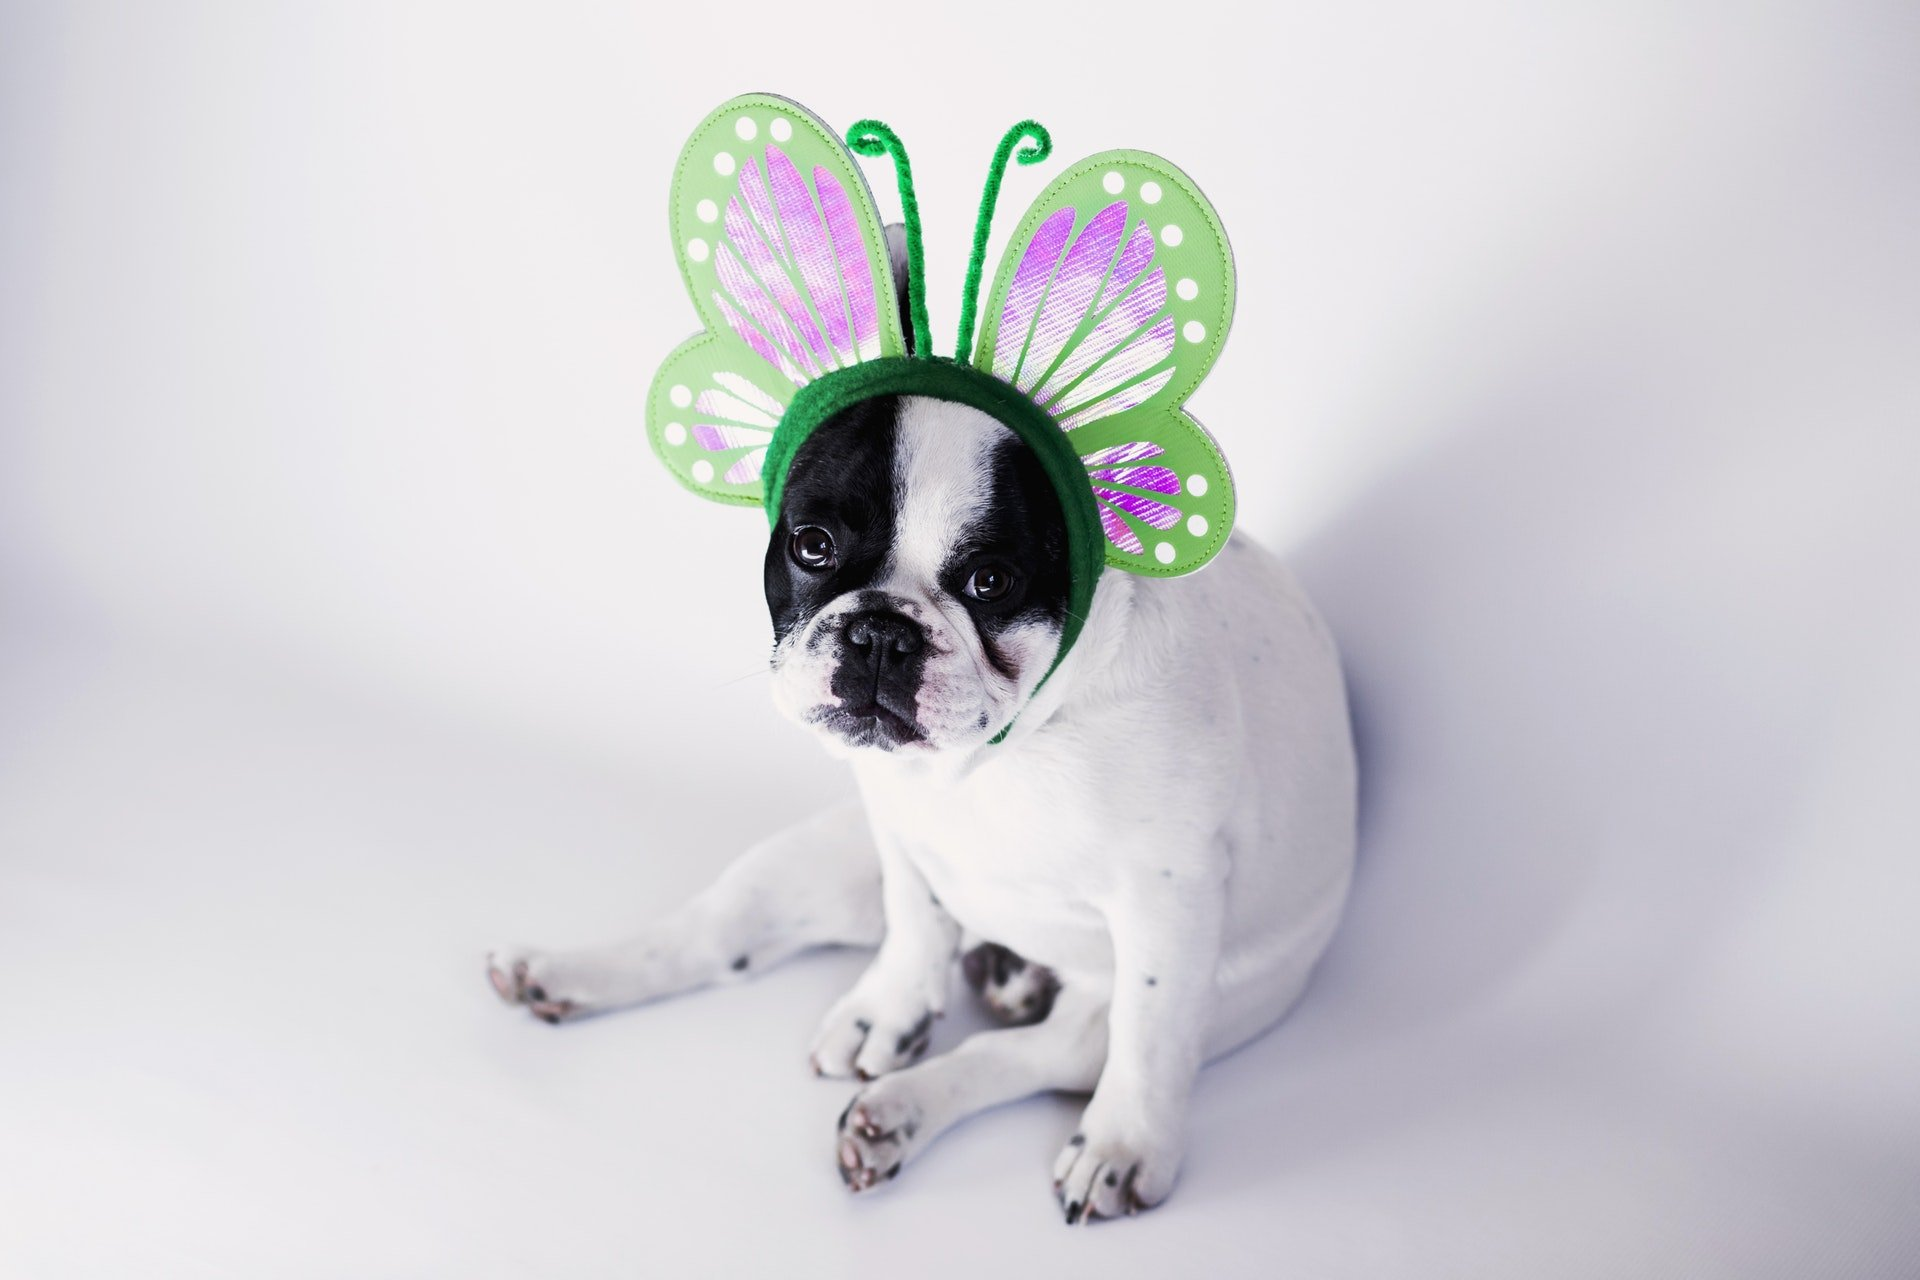 dog with butterfly headpiece decoration on